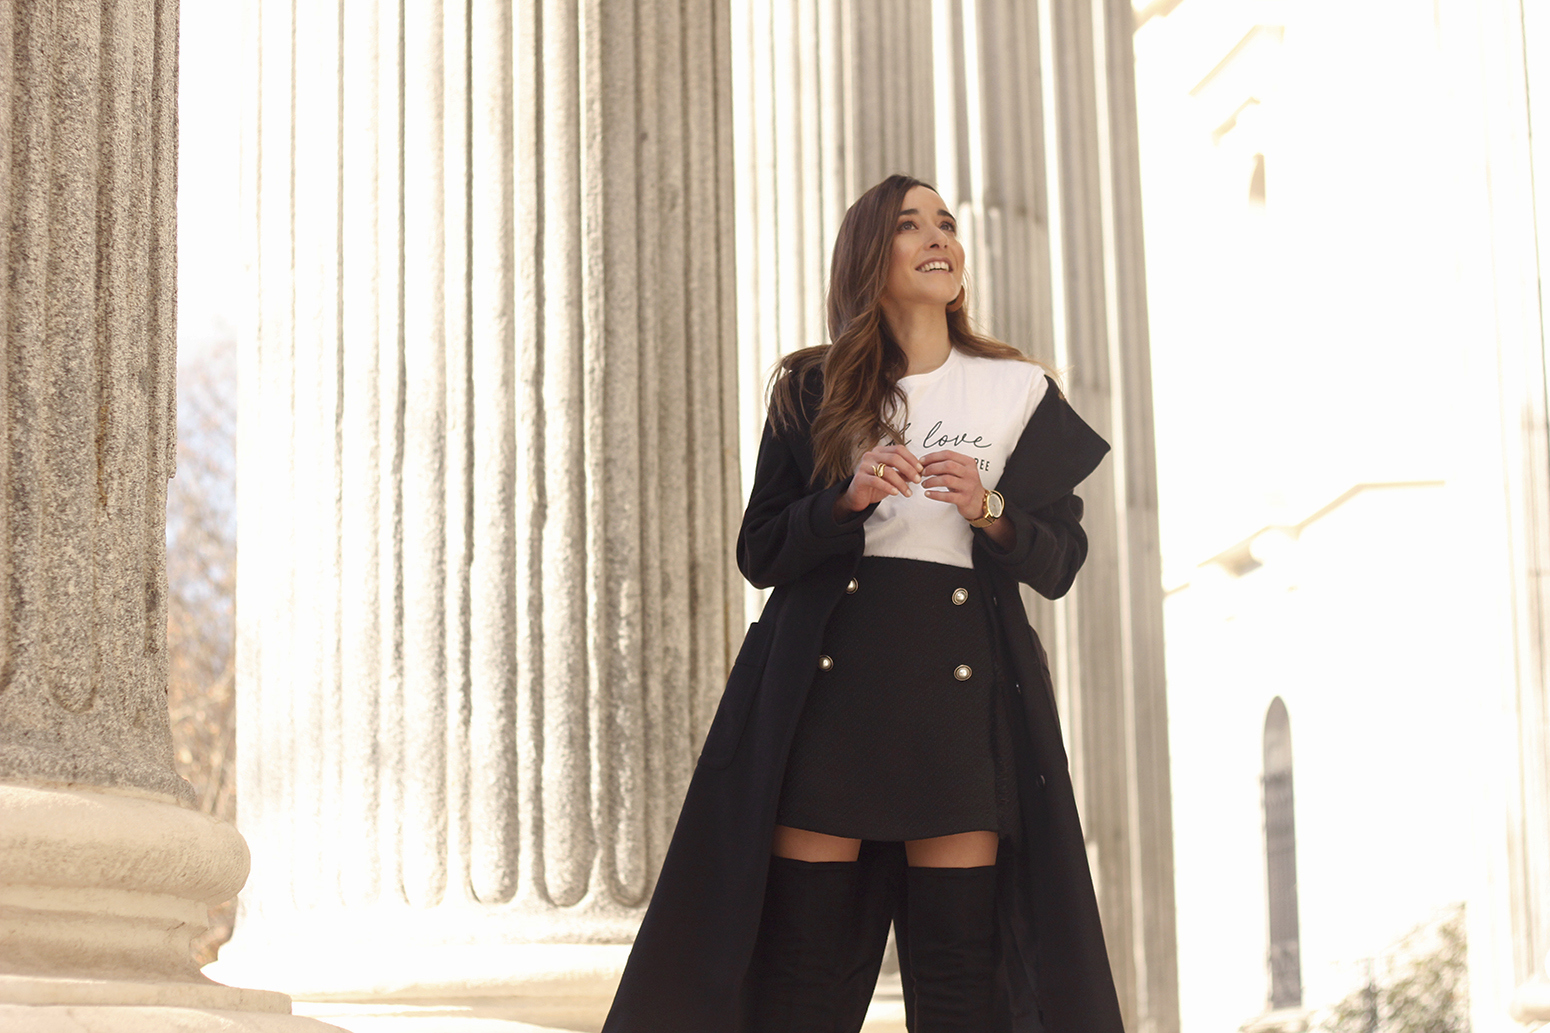 tweed skirt over the knee boots black trench coat street style outfit 201915